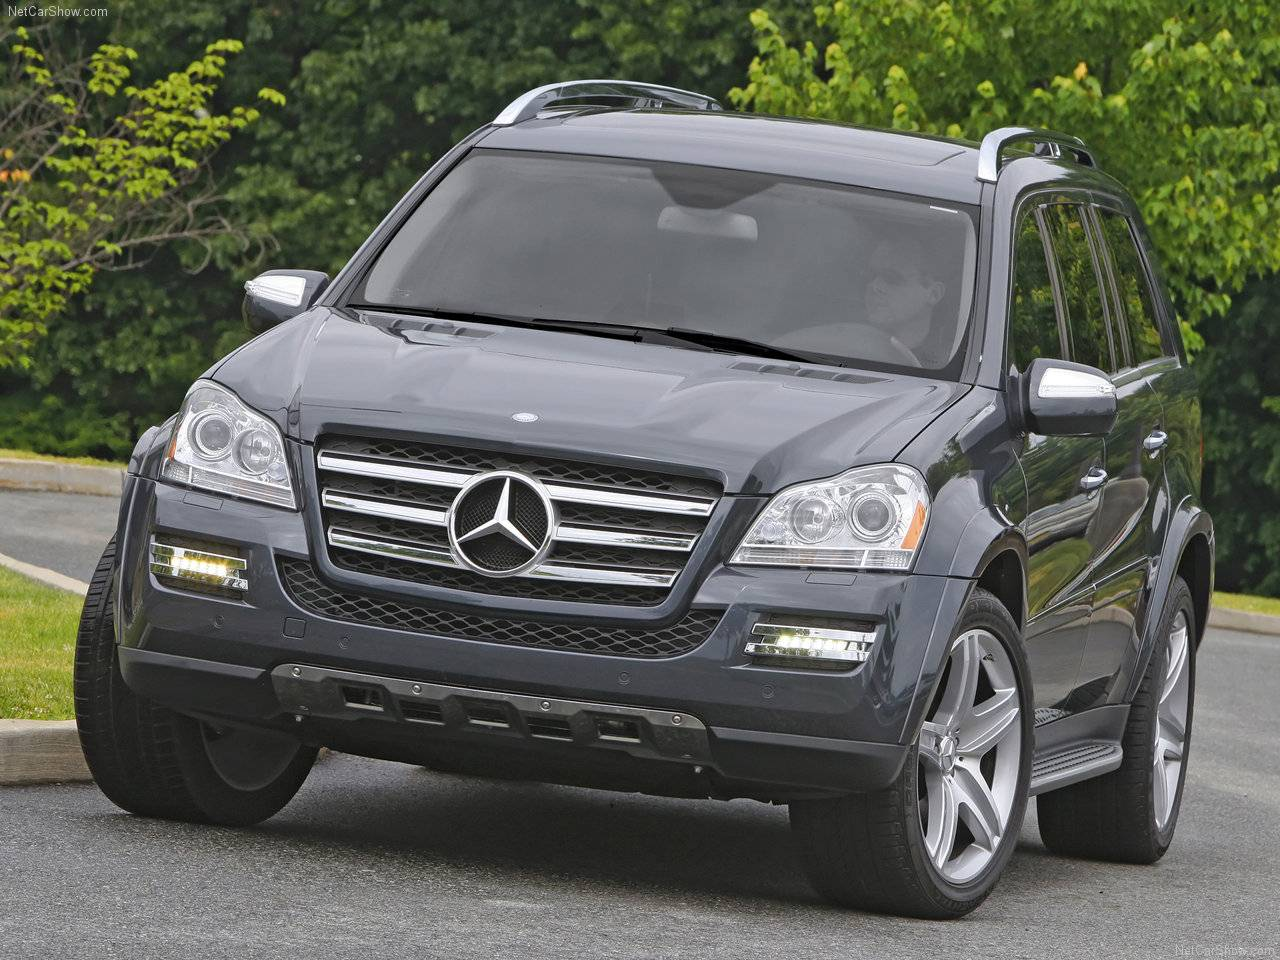 Mercedes Benz Auto twenty first century  2010 Mercedes Benz GL550